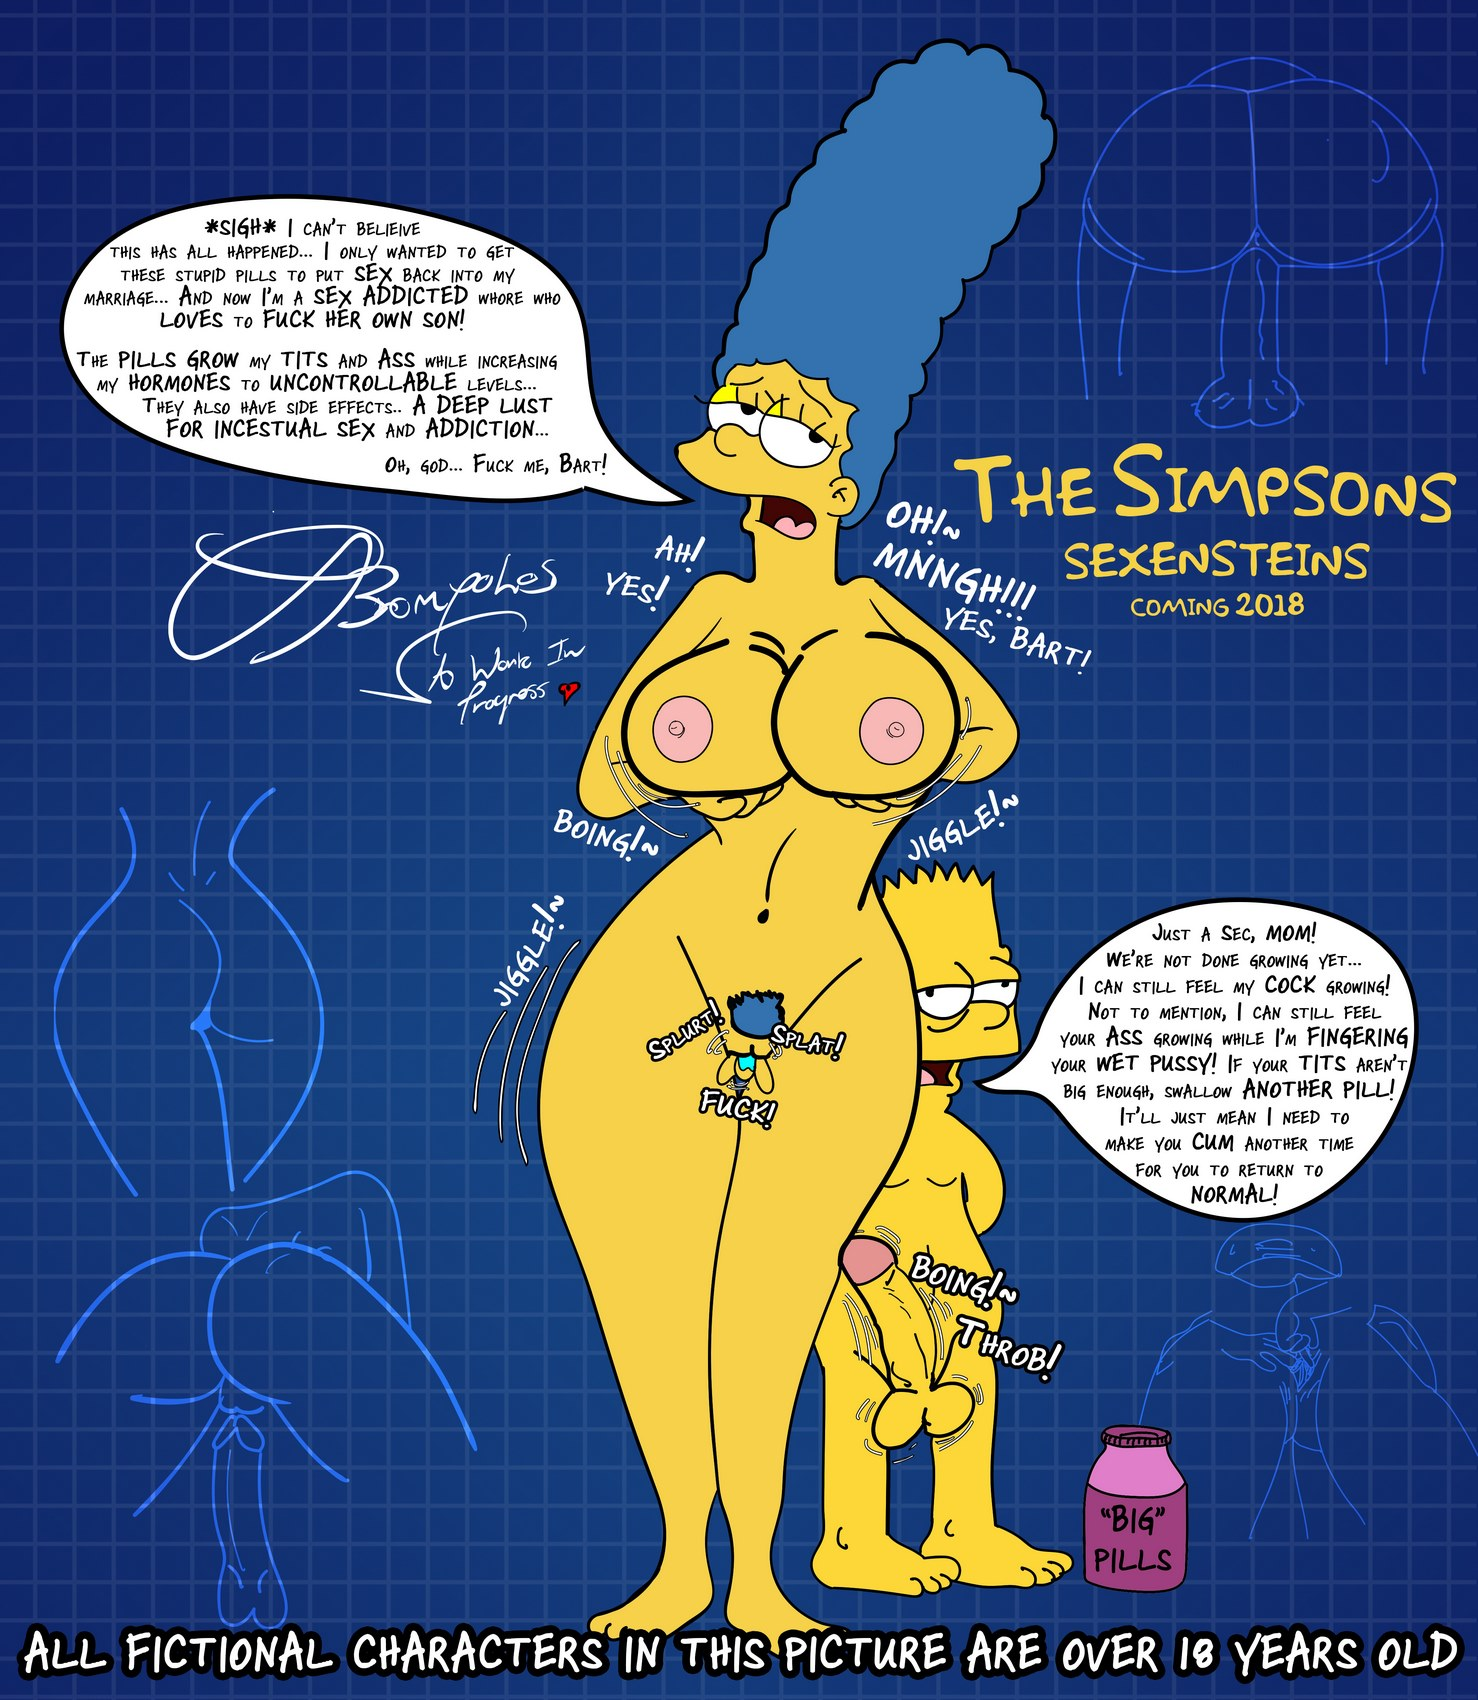 002 - The Simpsons are the sexenteins.